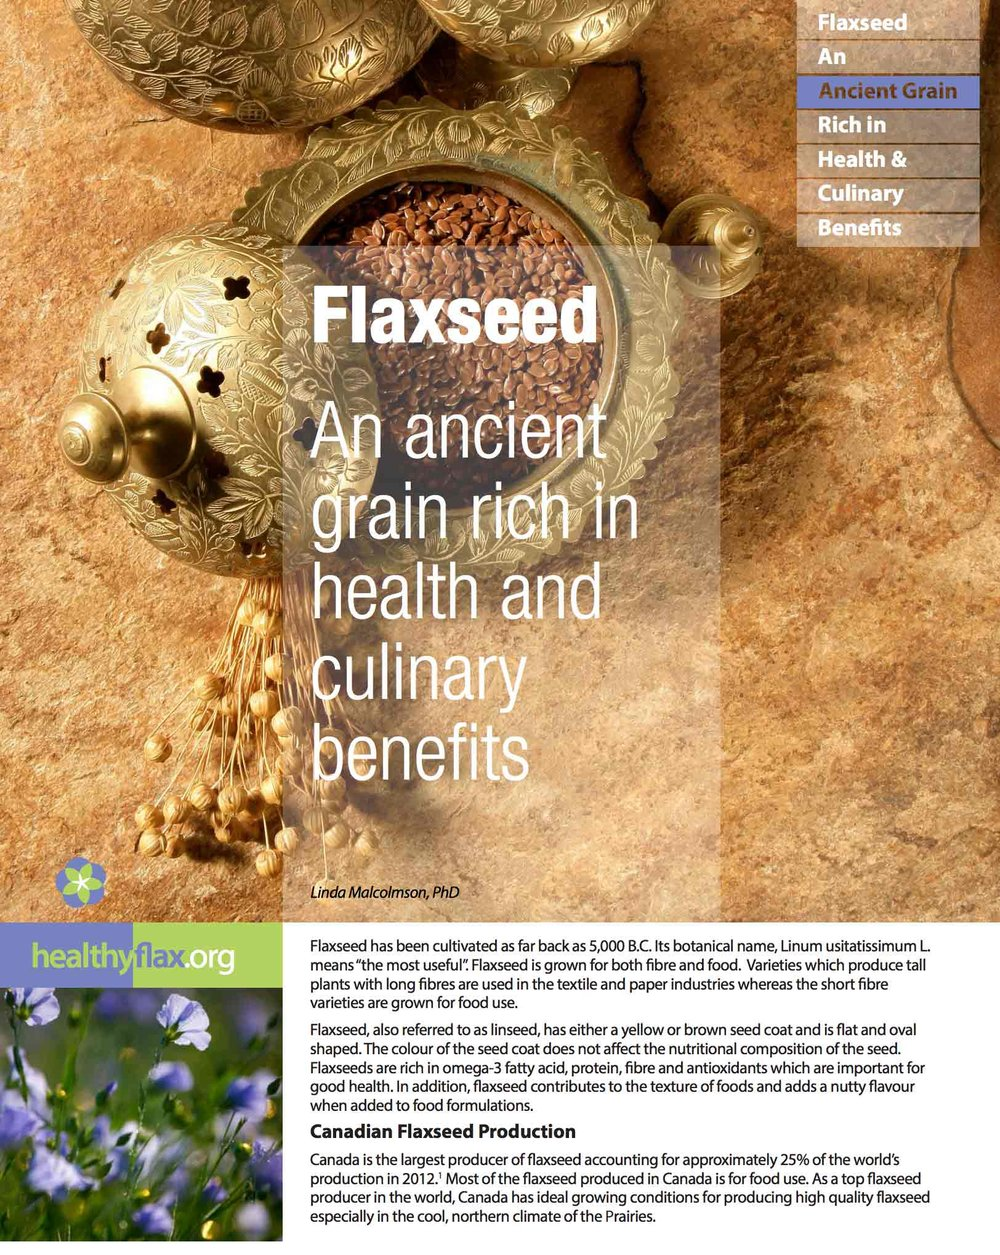 Flaxseed: An ancient grain rich in health and culinary benefits - Read the full article as a PDF.